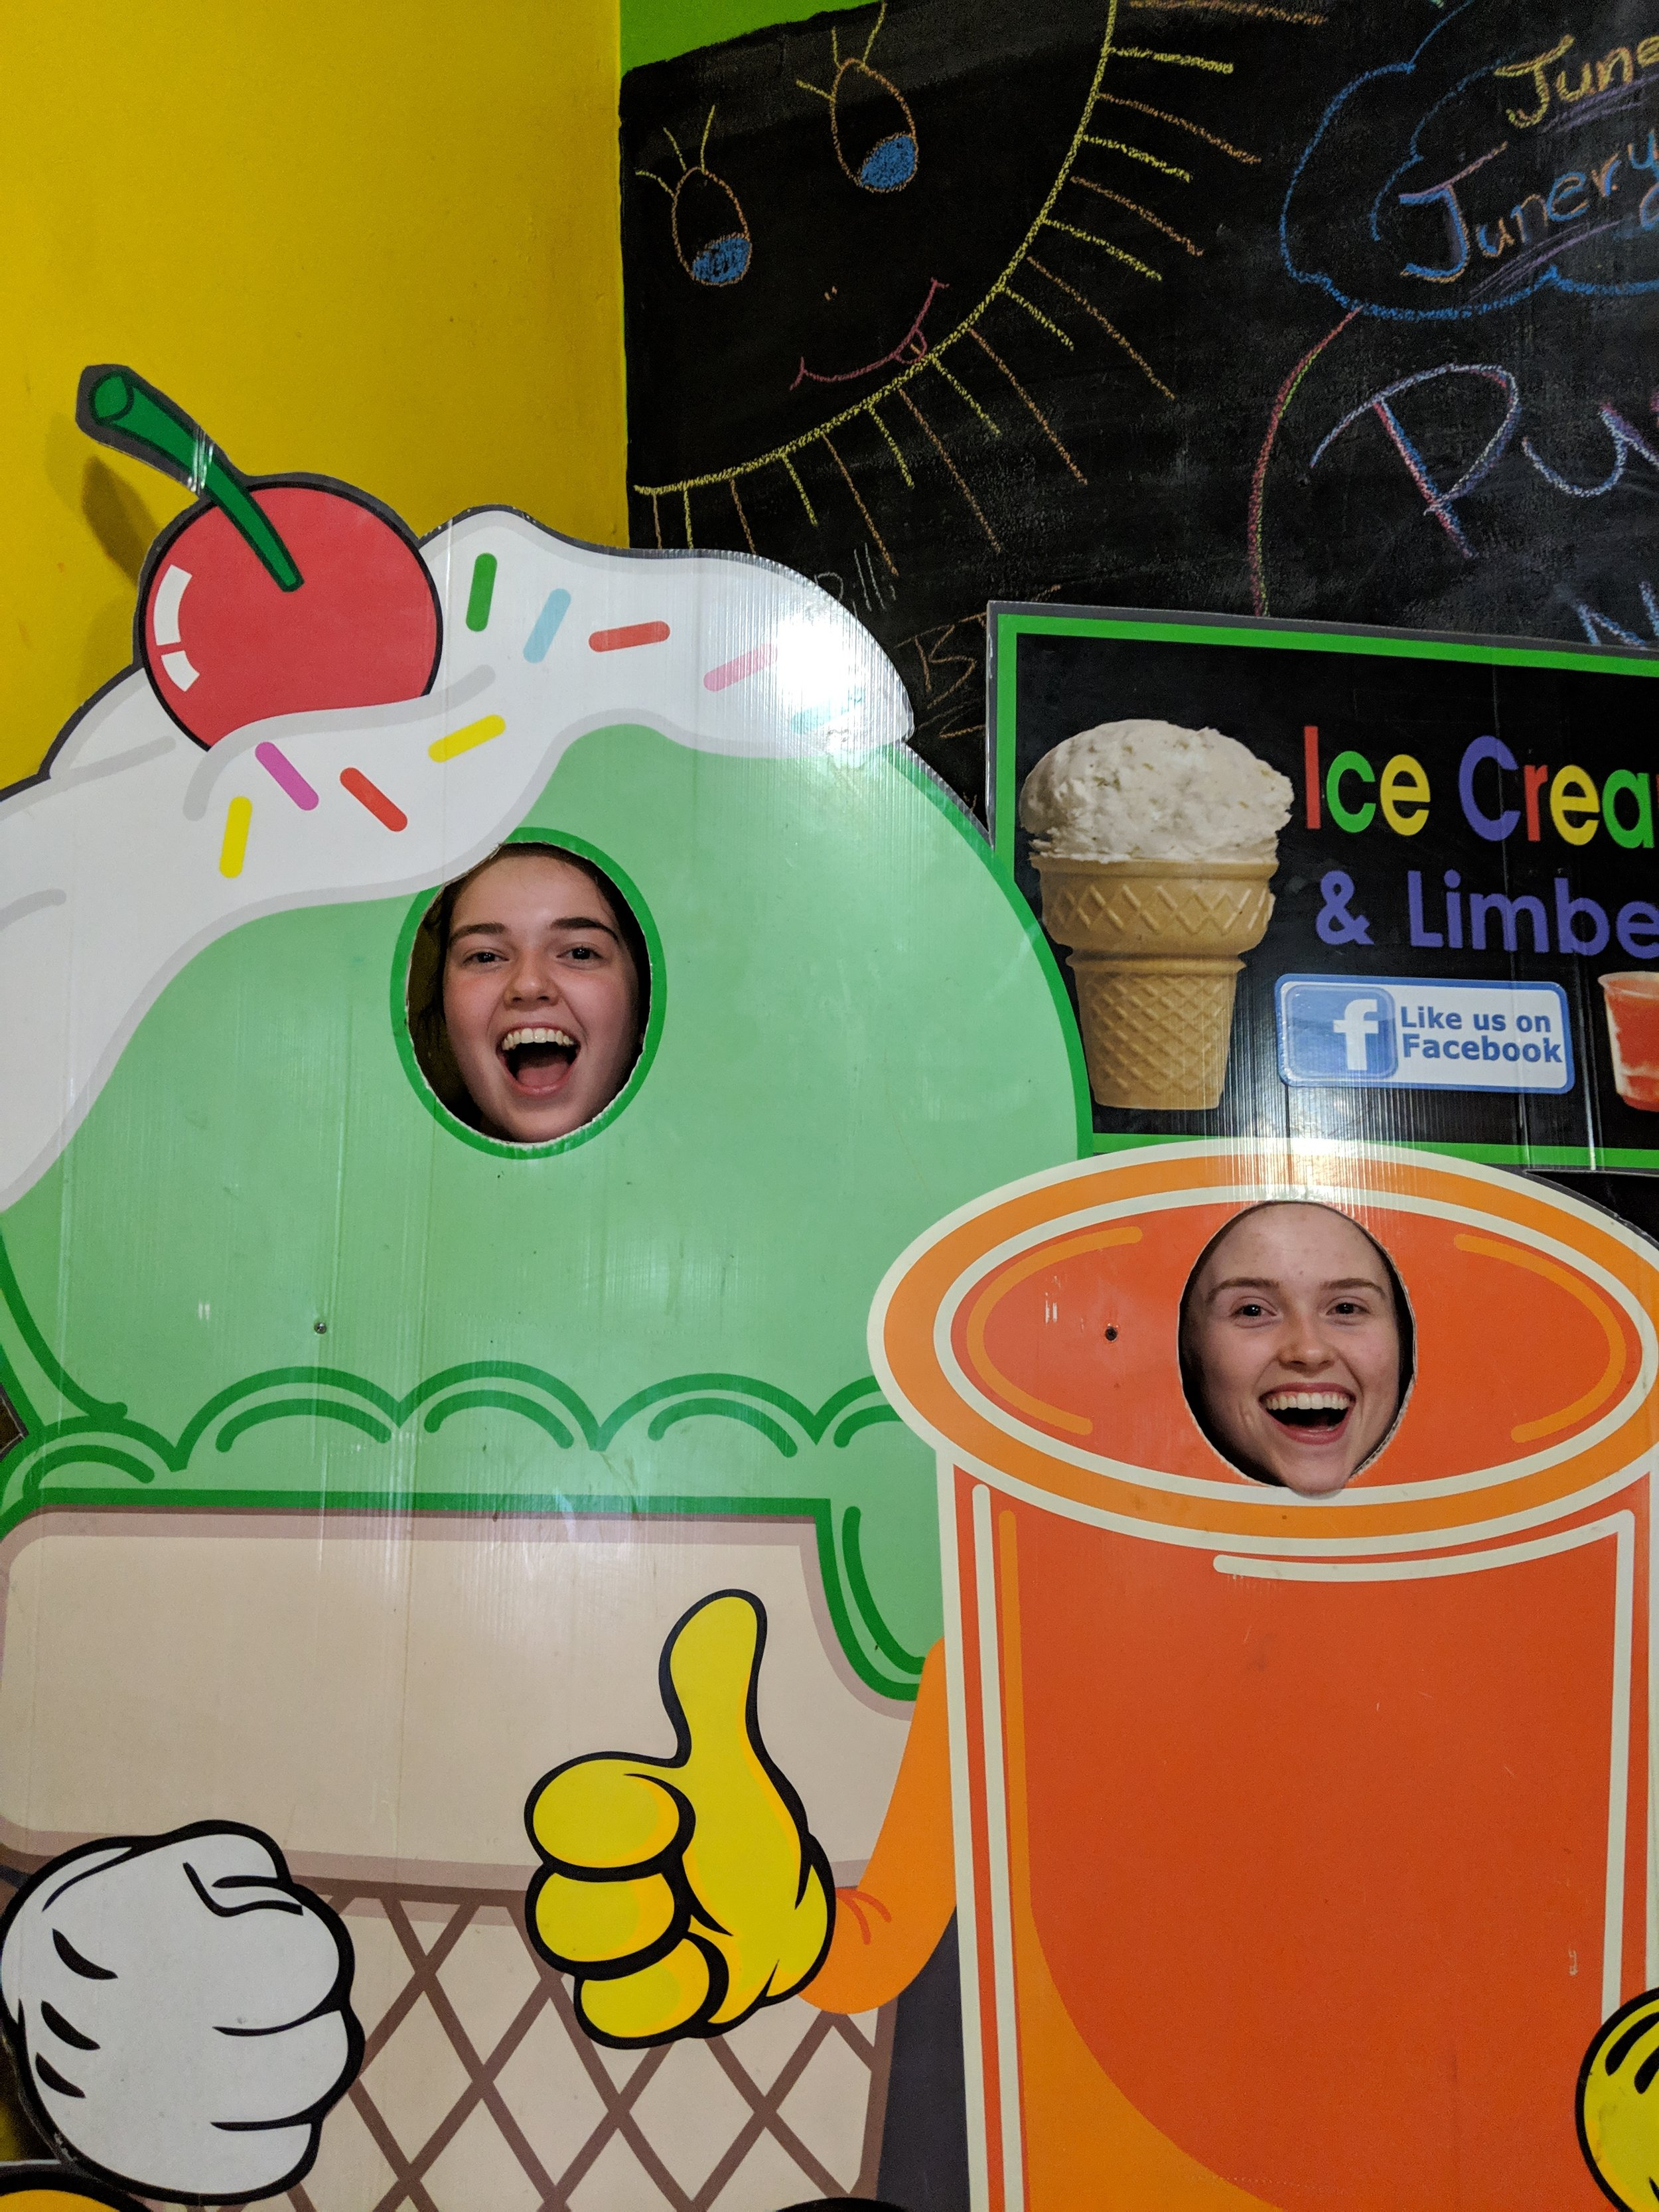 Sarah Jane Thompson and Bekah Wommack loved the ice cream so much they turned into ice cream!